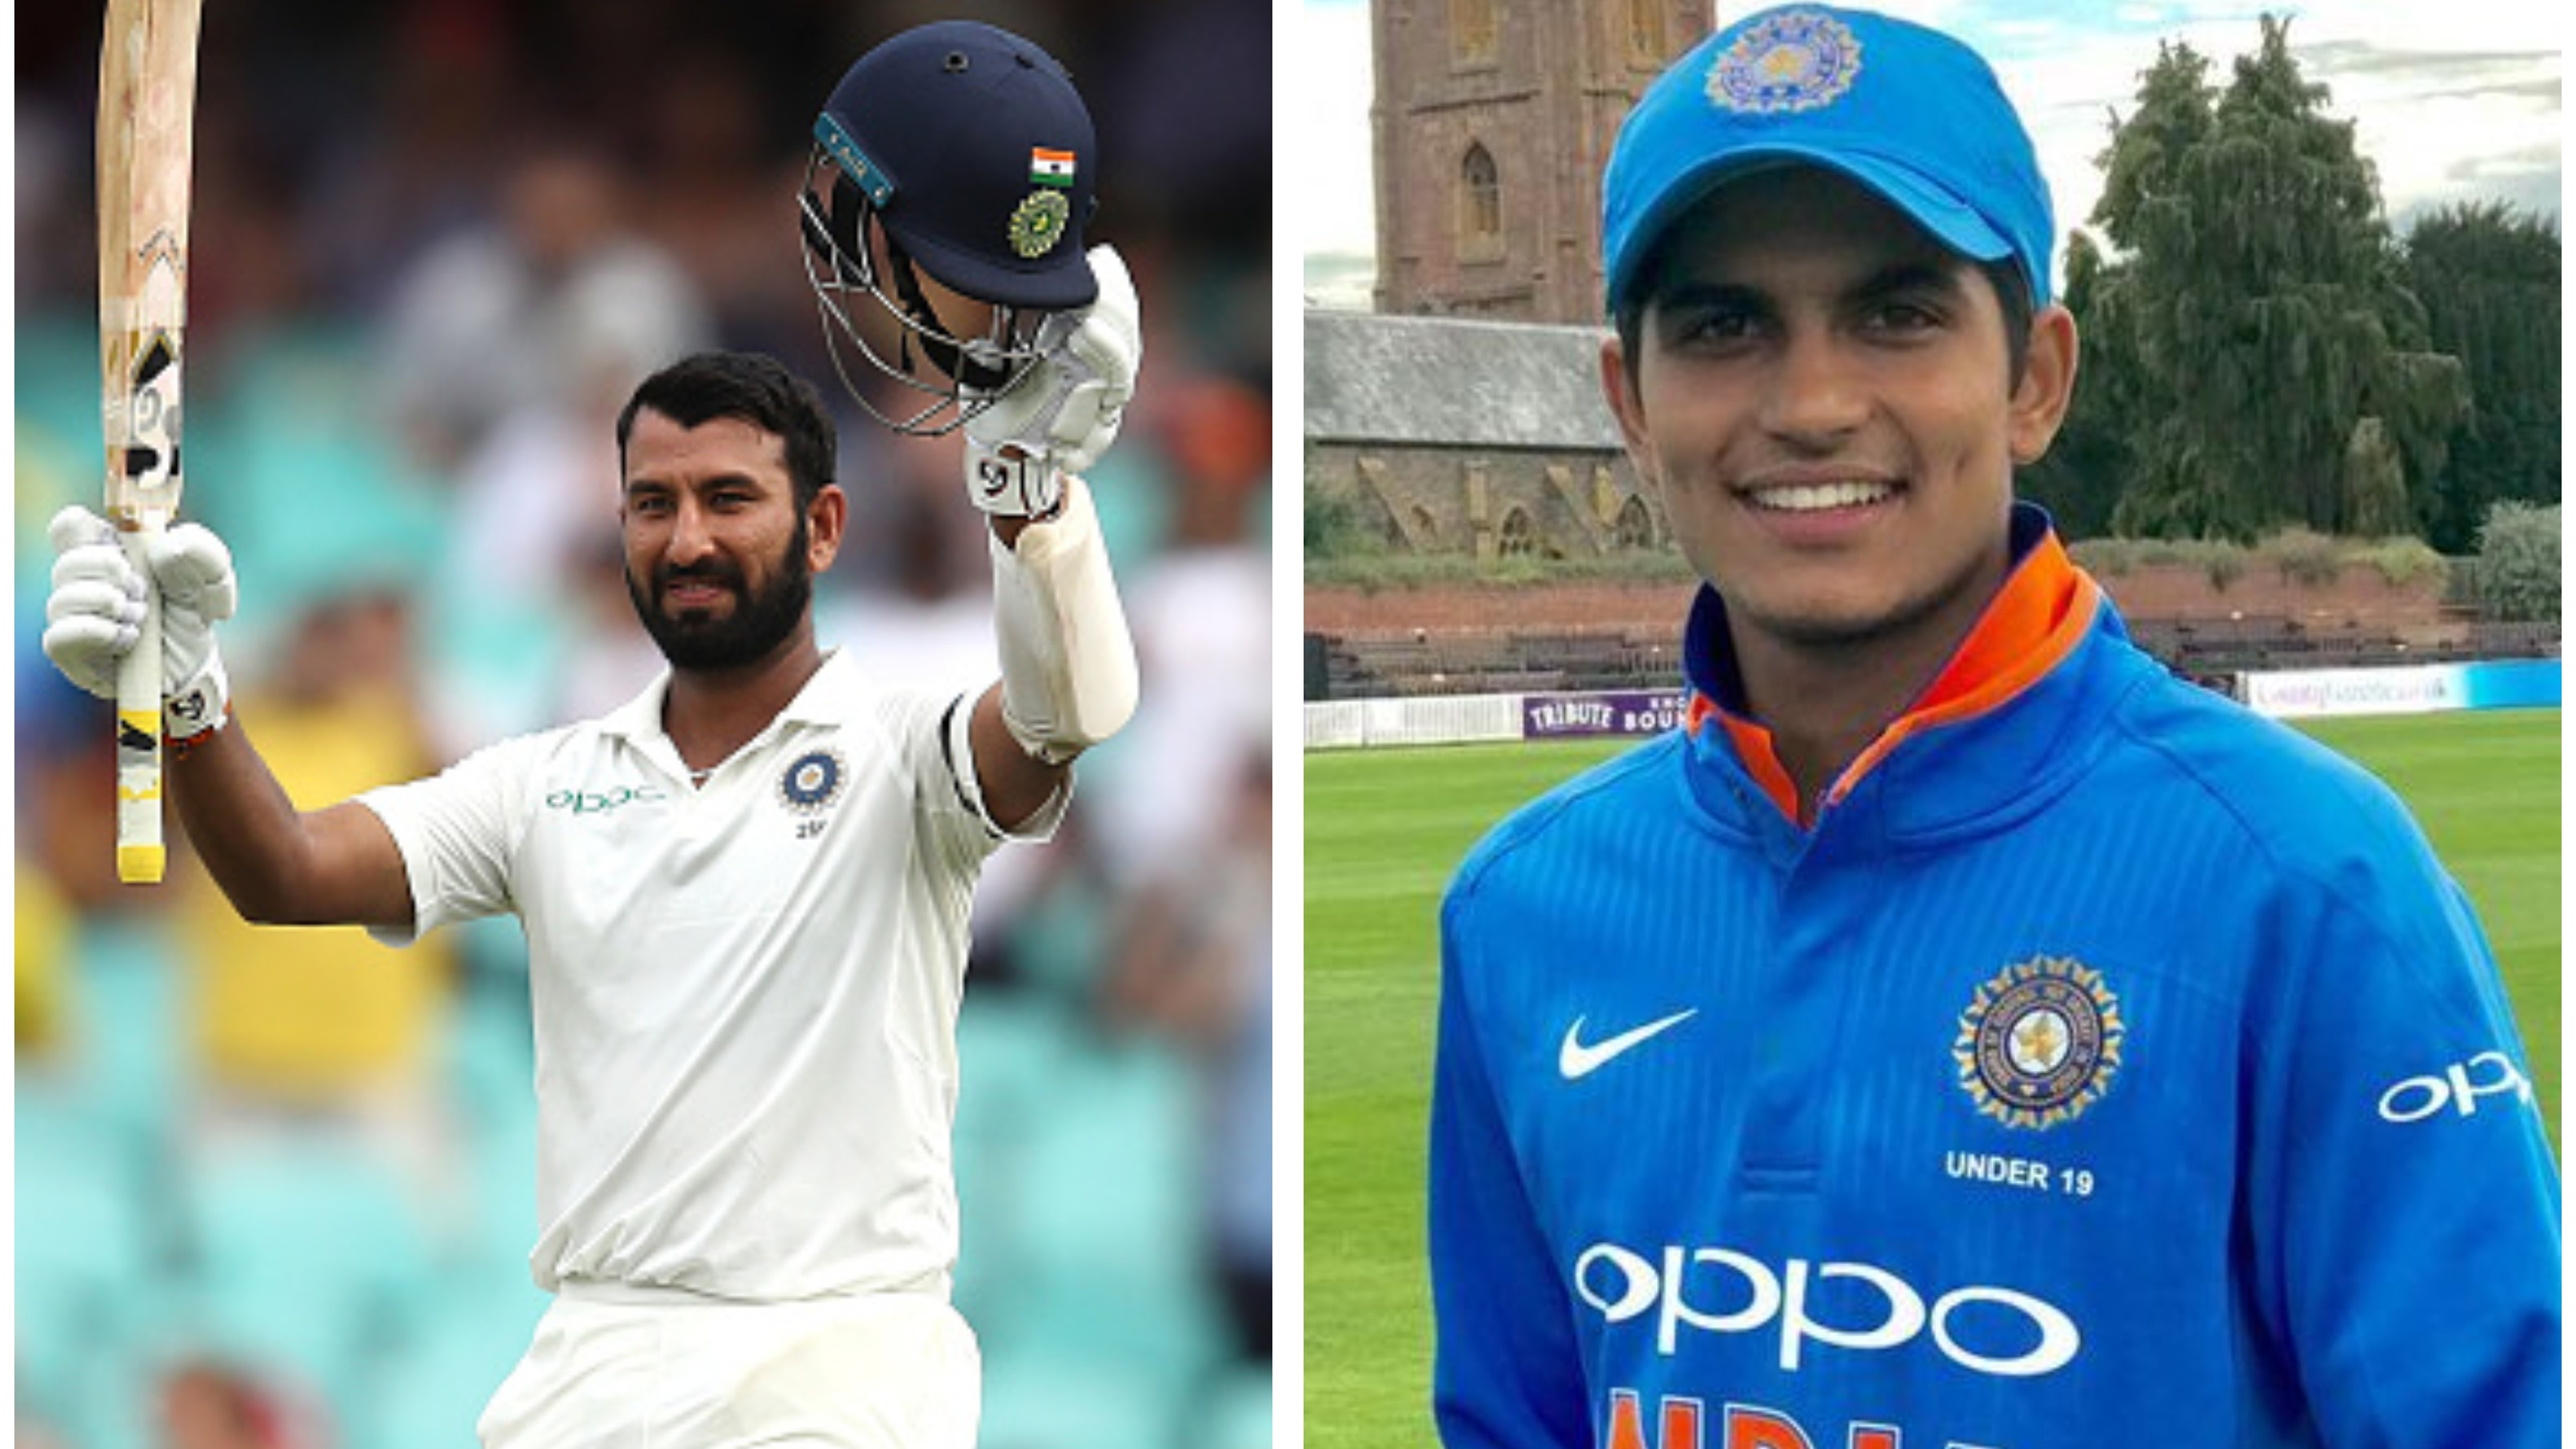 AUS v IND 2018-19: Shubman Gill terms Pujara's Australia heroics as a benchmark for youngsters